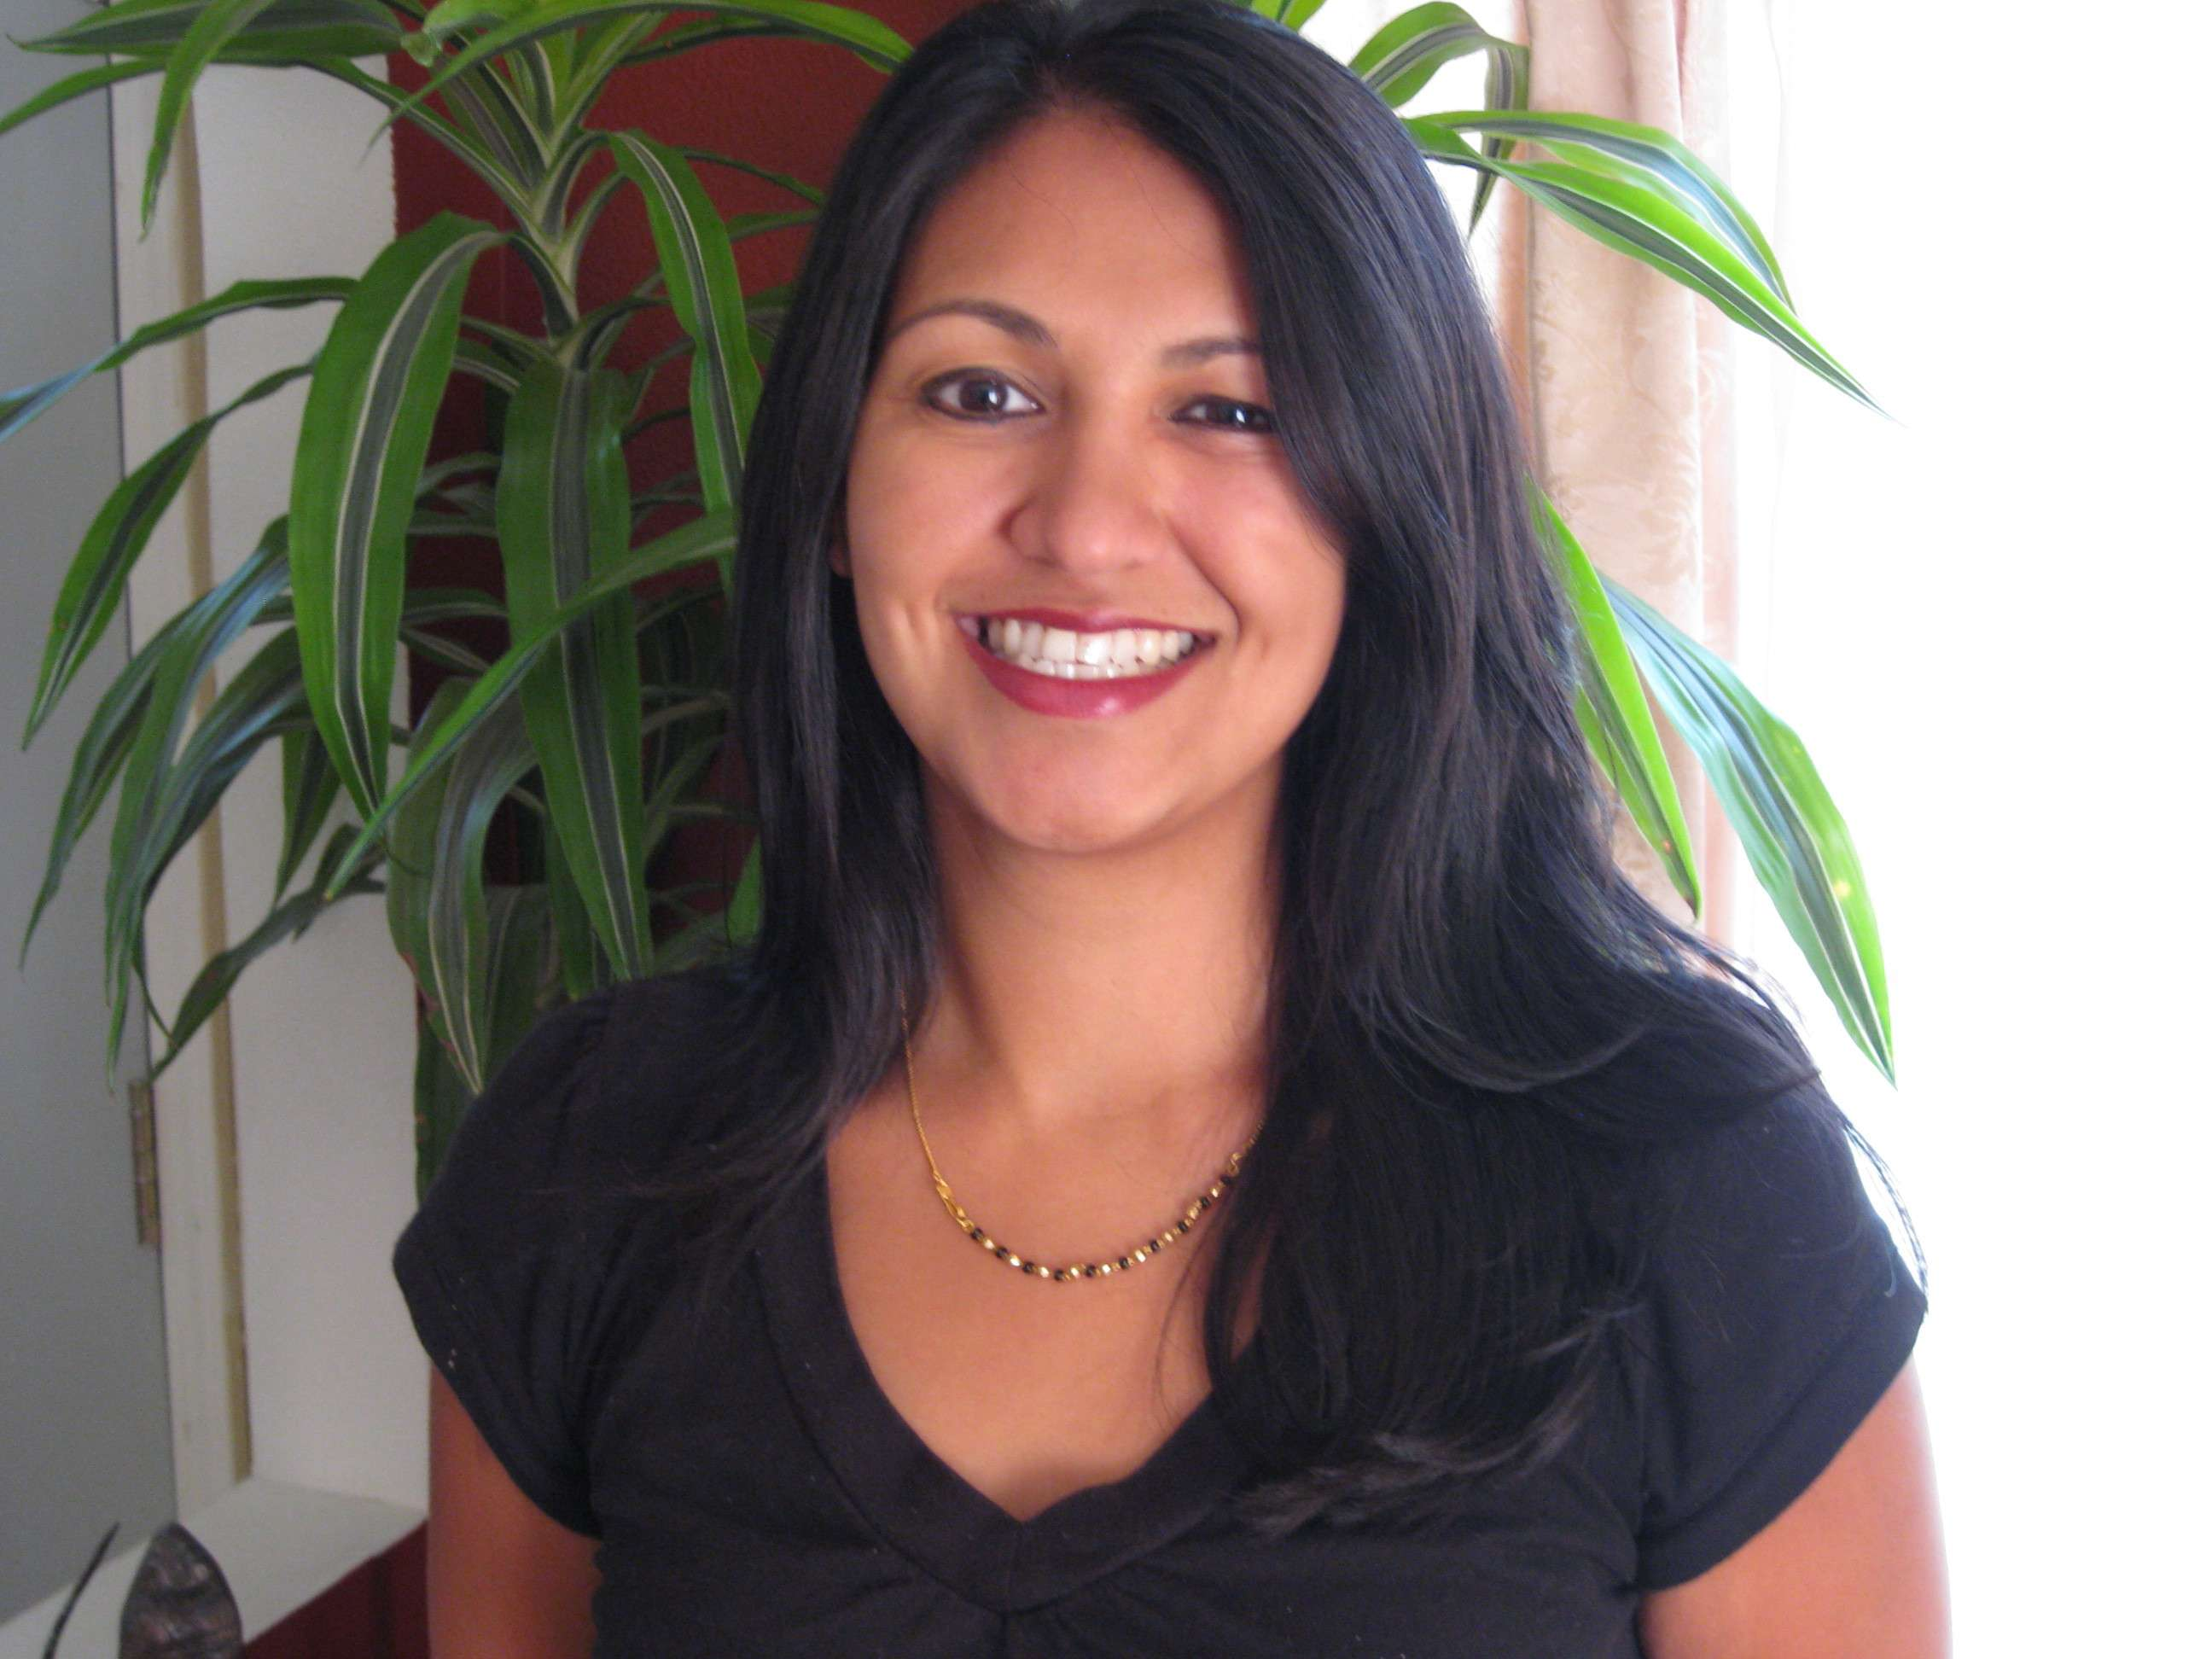 Congratulations to Dr. Bhatt on her recent article!